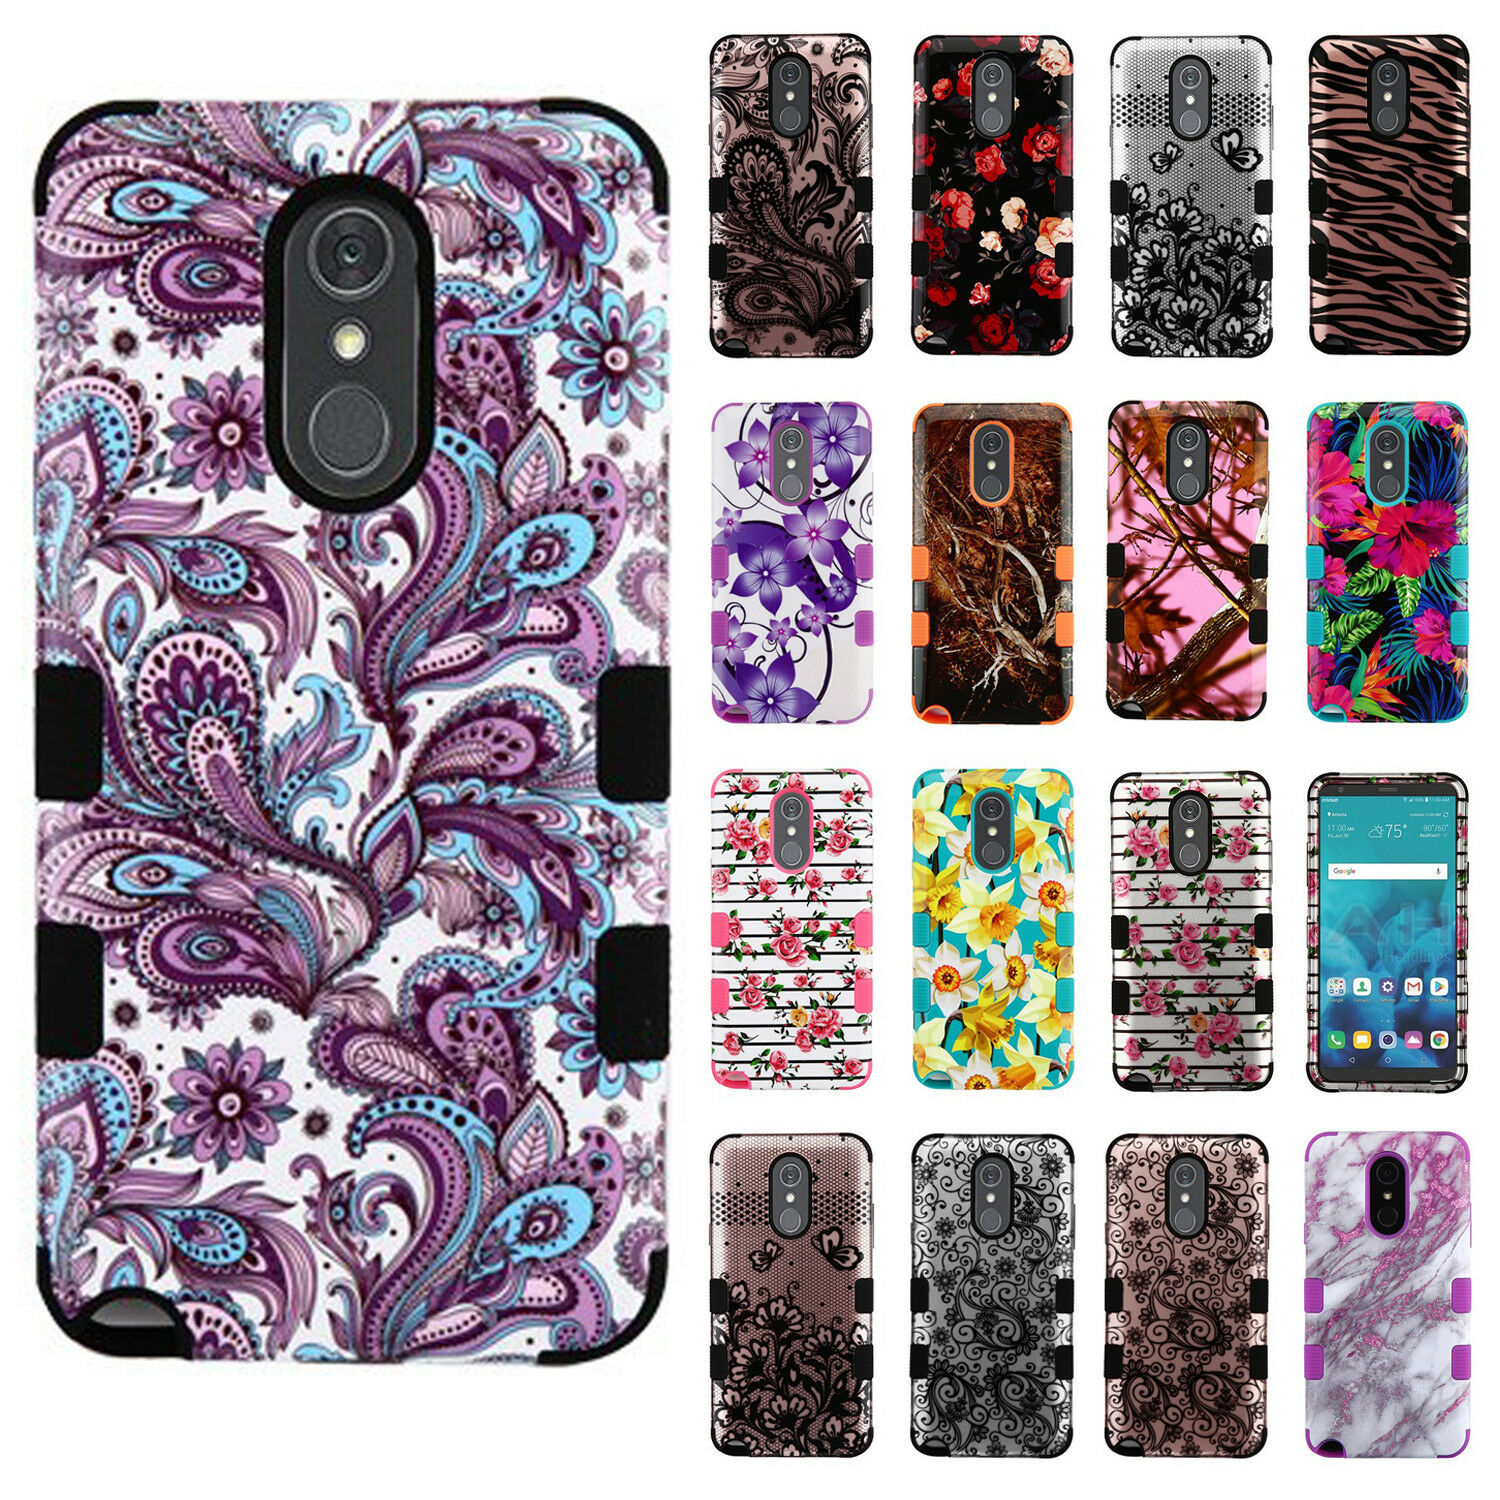 For LG Stylo 4 IMPACT TUFF HYBRID Protector Hard Case Skin Phone Cover Accessory